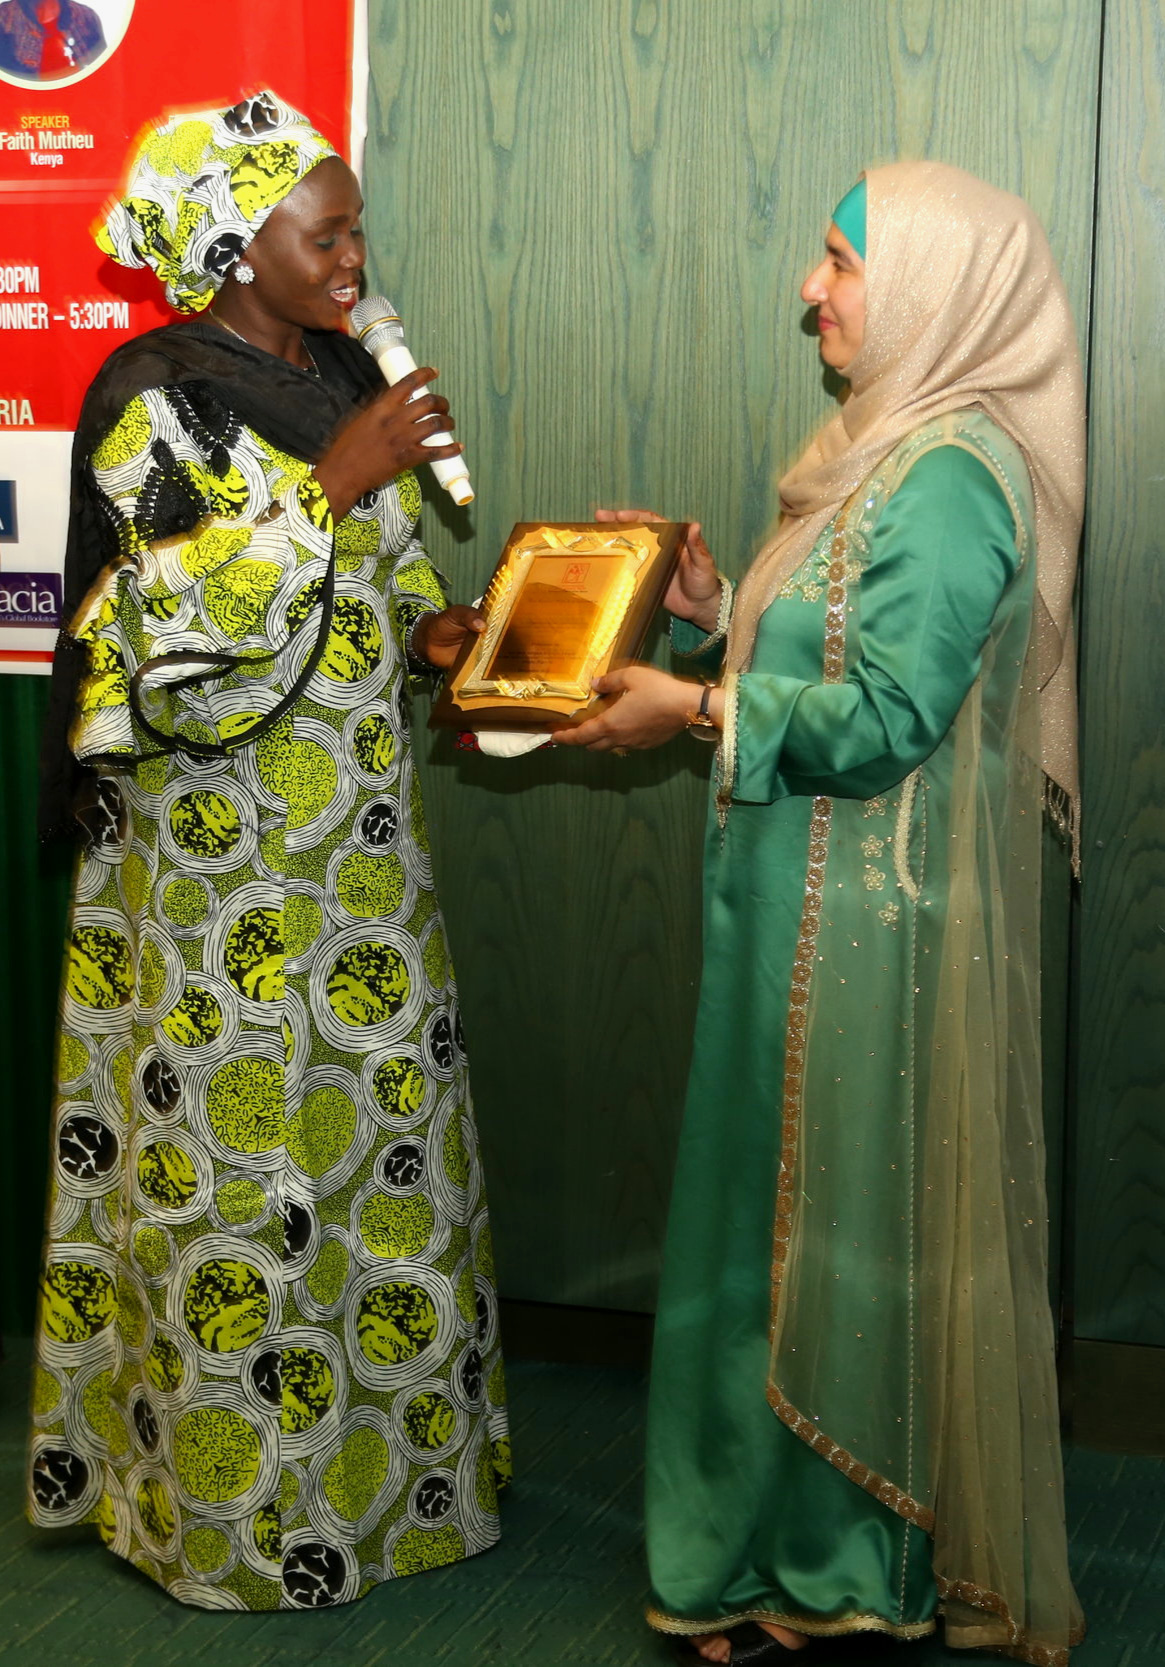 Receiving a Special Prize 'in recognition of efforts towards the growth and development of the African Literary Space' from the African Writers Development Trust Conference, Abuja,  NIGERIA (1 Dec 2018)  Presented by Halima Usman (President of the Association of Nigerian Authors AMA)